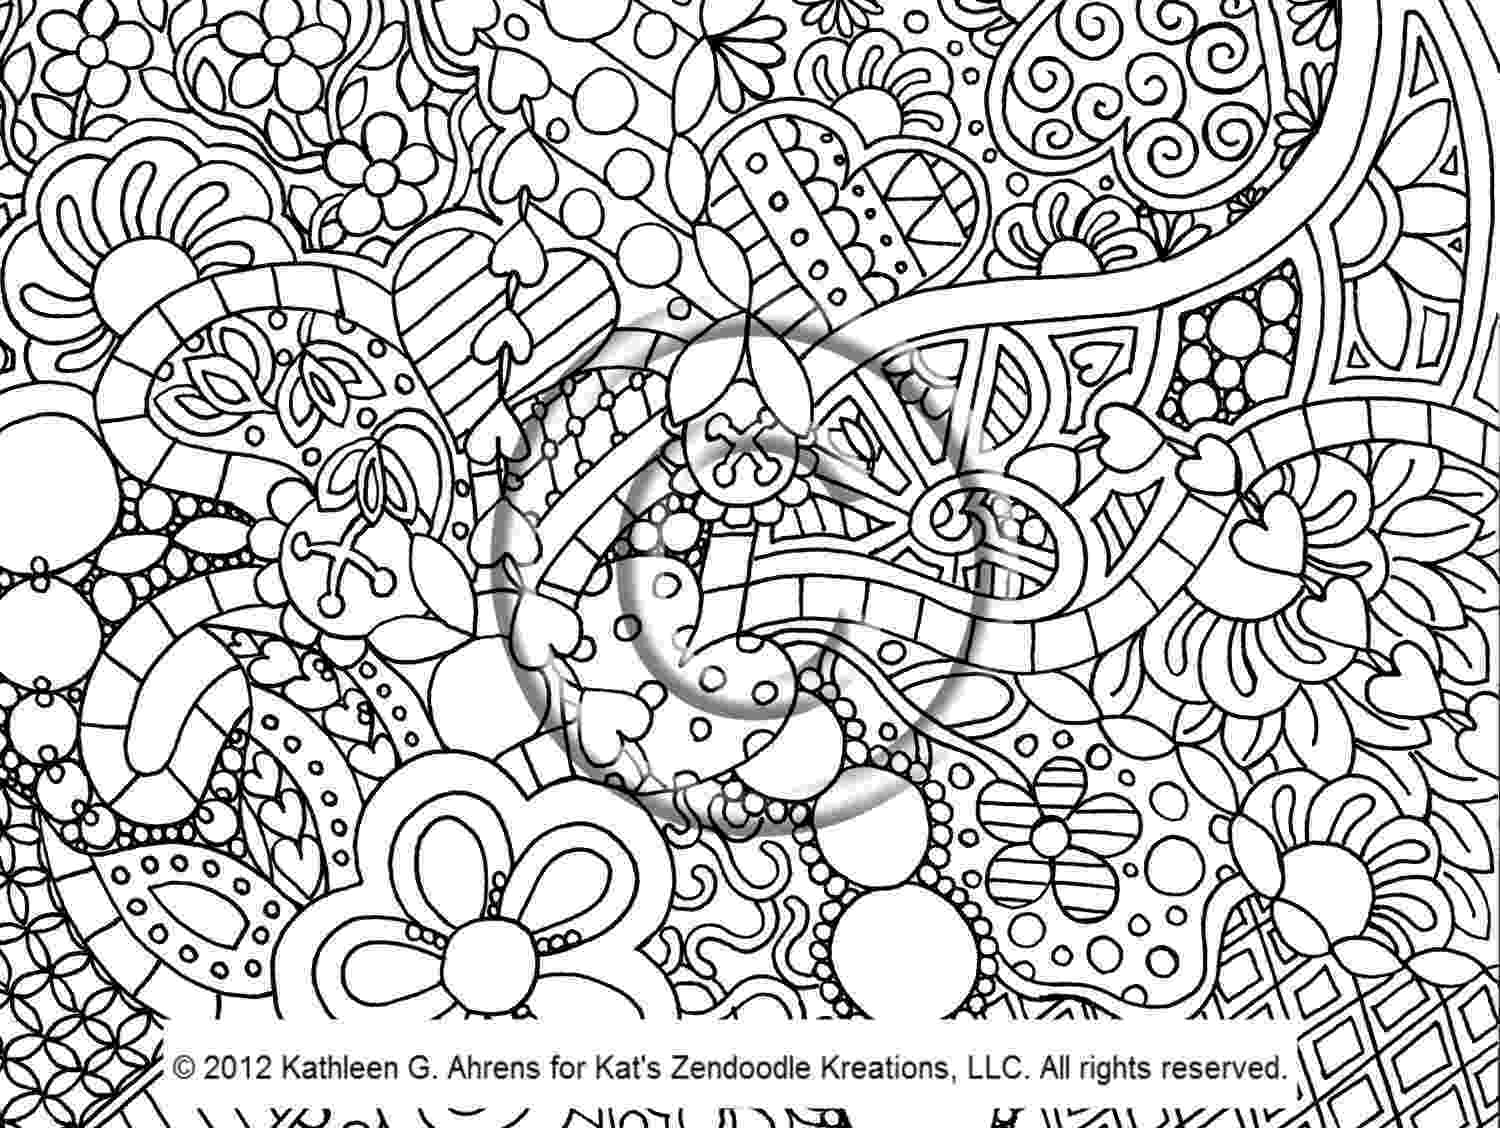 psychedelic colouring pages psychedelic woman psychedelic adult coloring pages colouring psychedelic pages